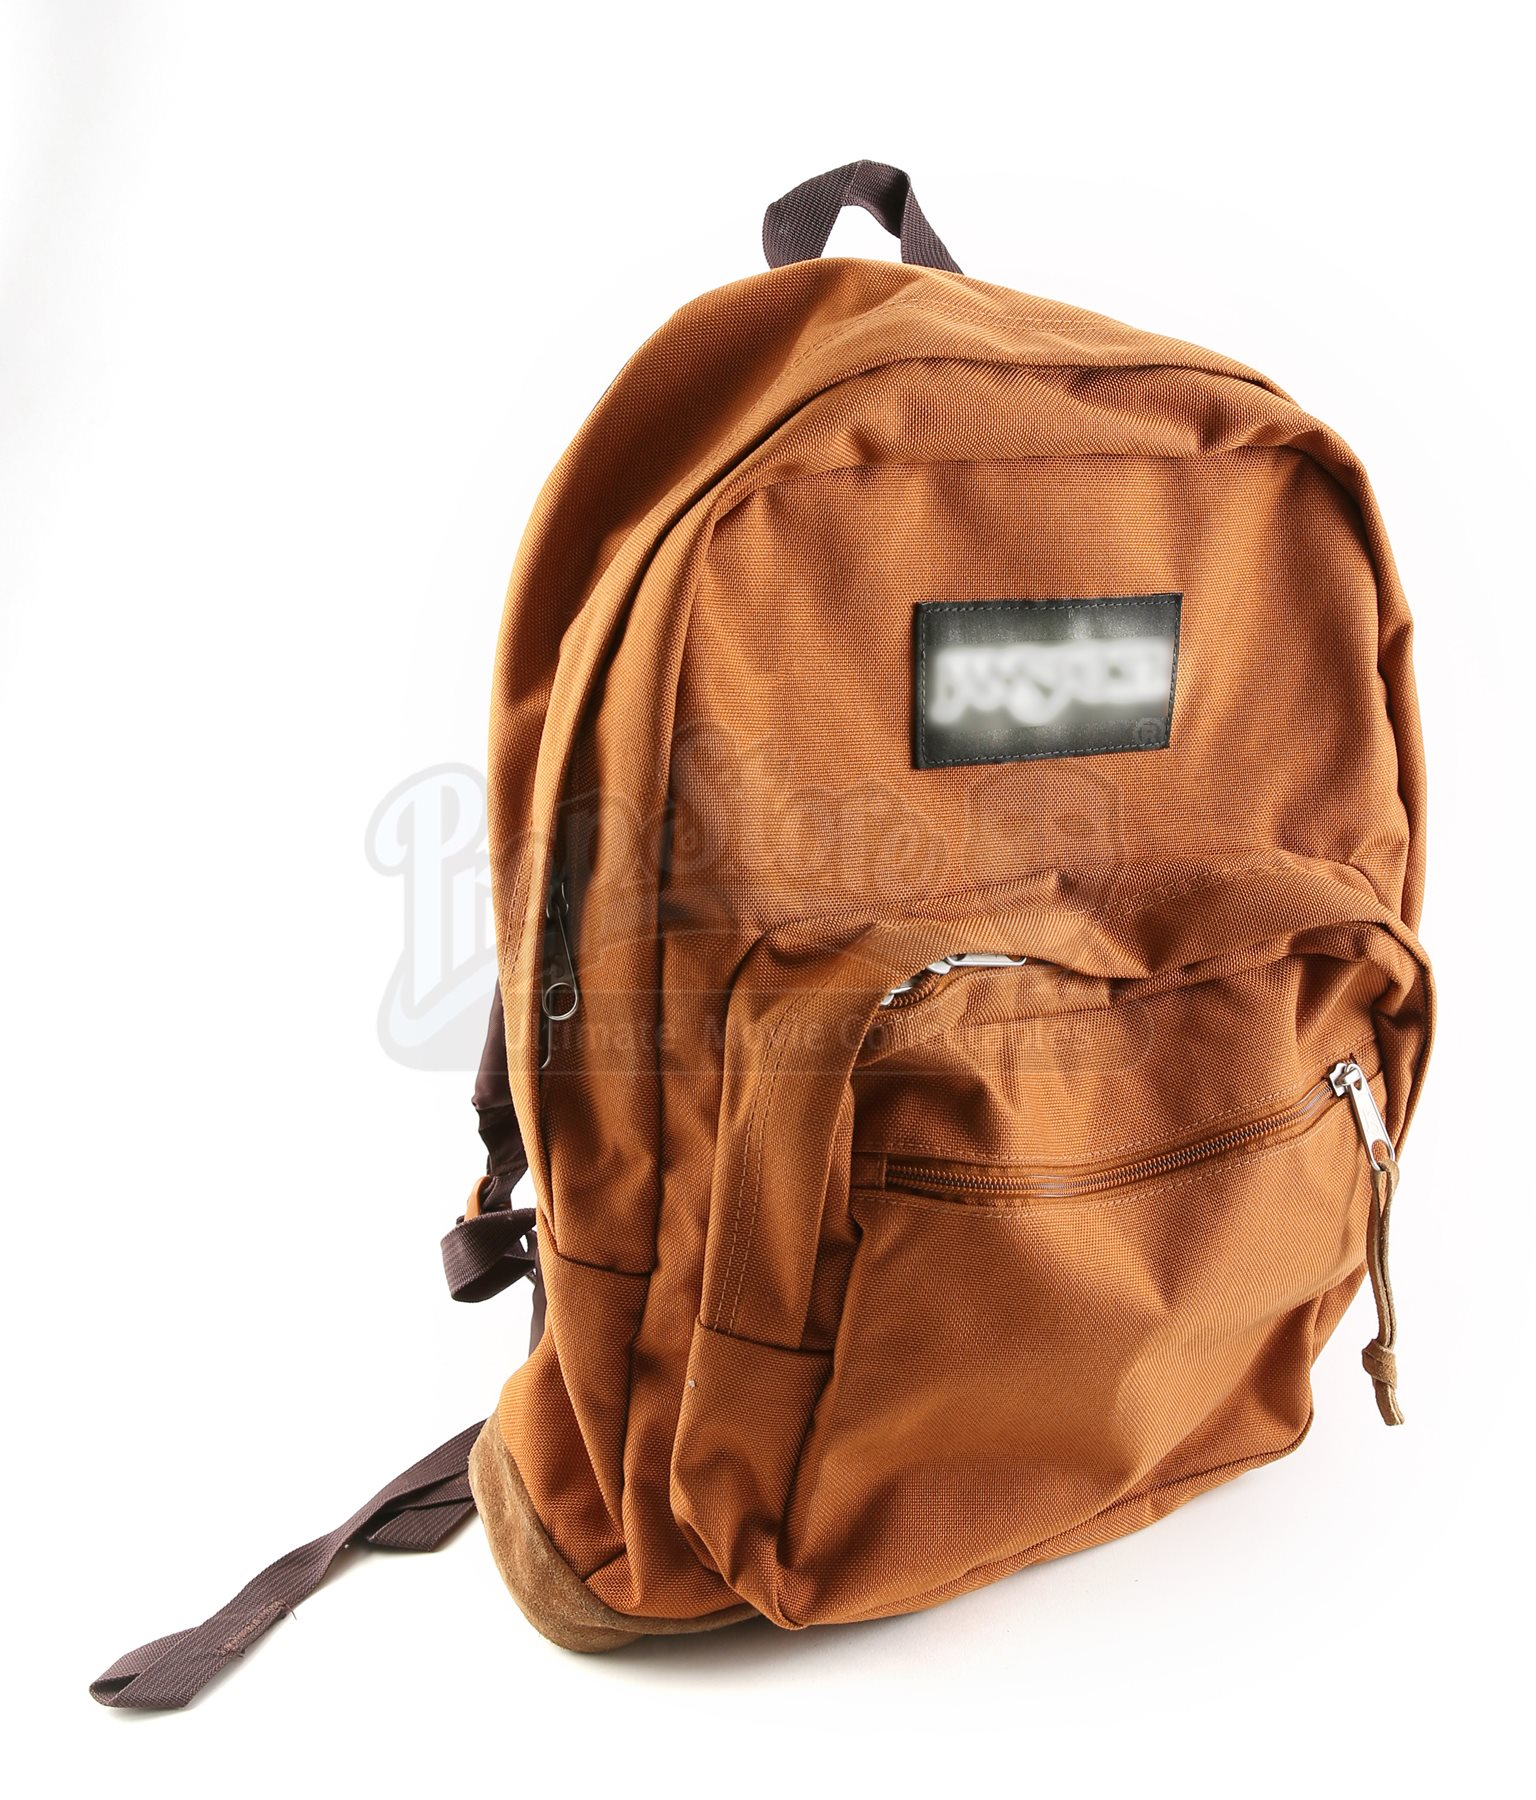 limited sale excellent quality performance sportswear Bella Swan's Backpack - Current price: $500